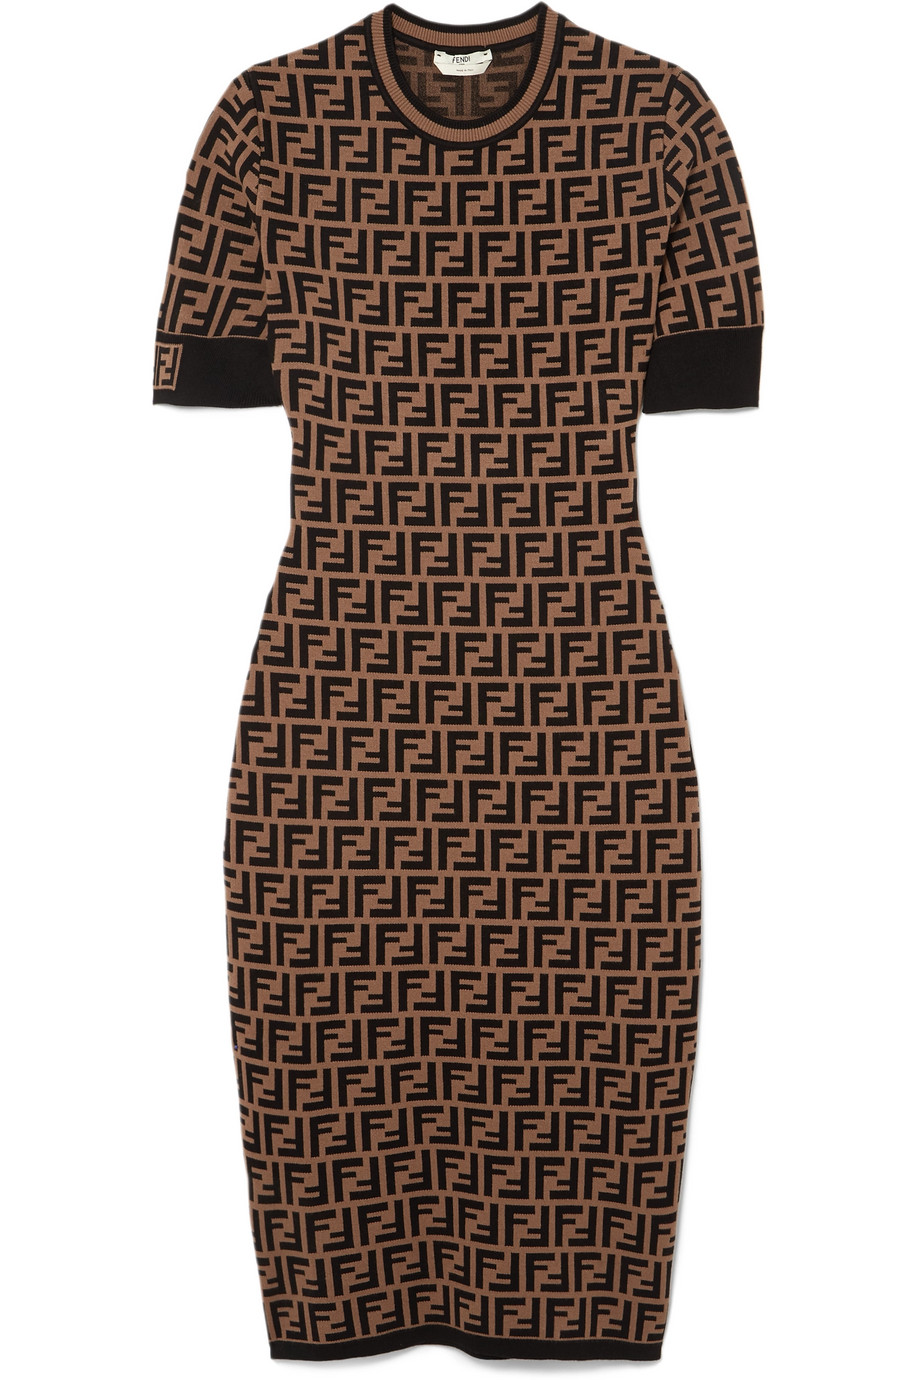 Fendi Robe en mailles jacquard stretch